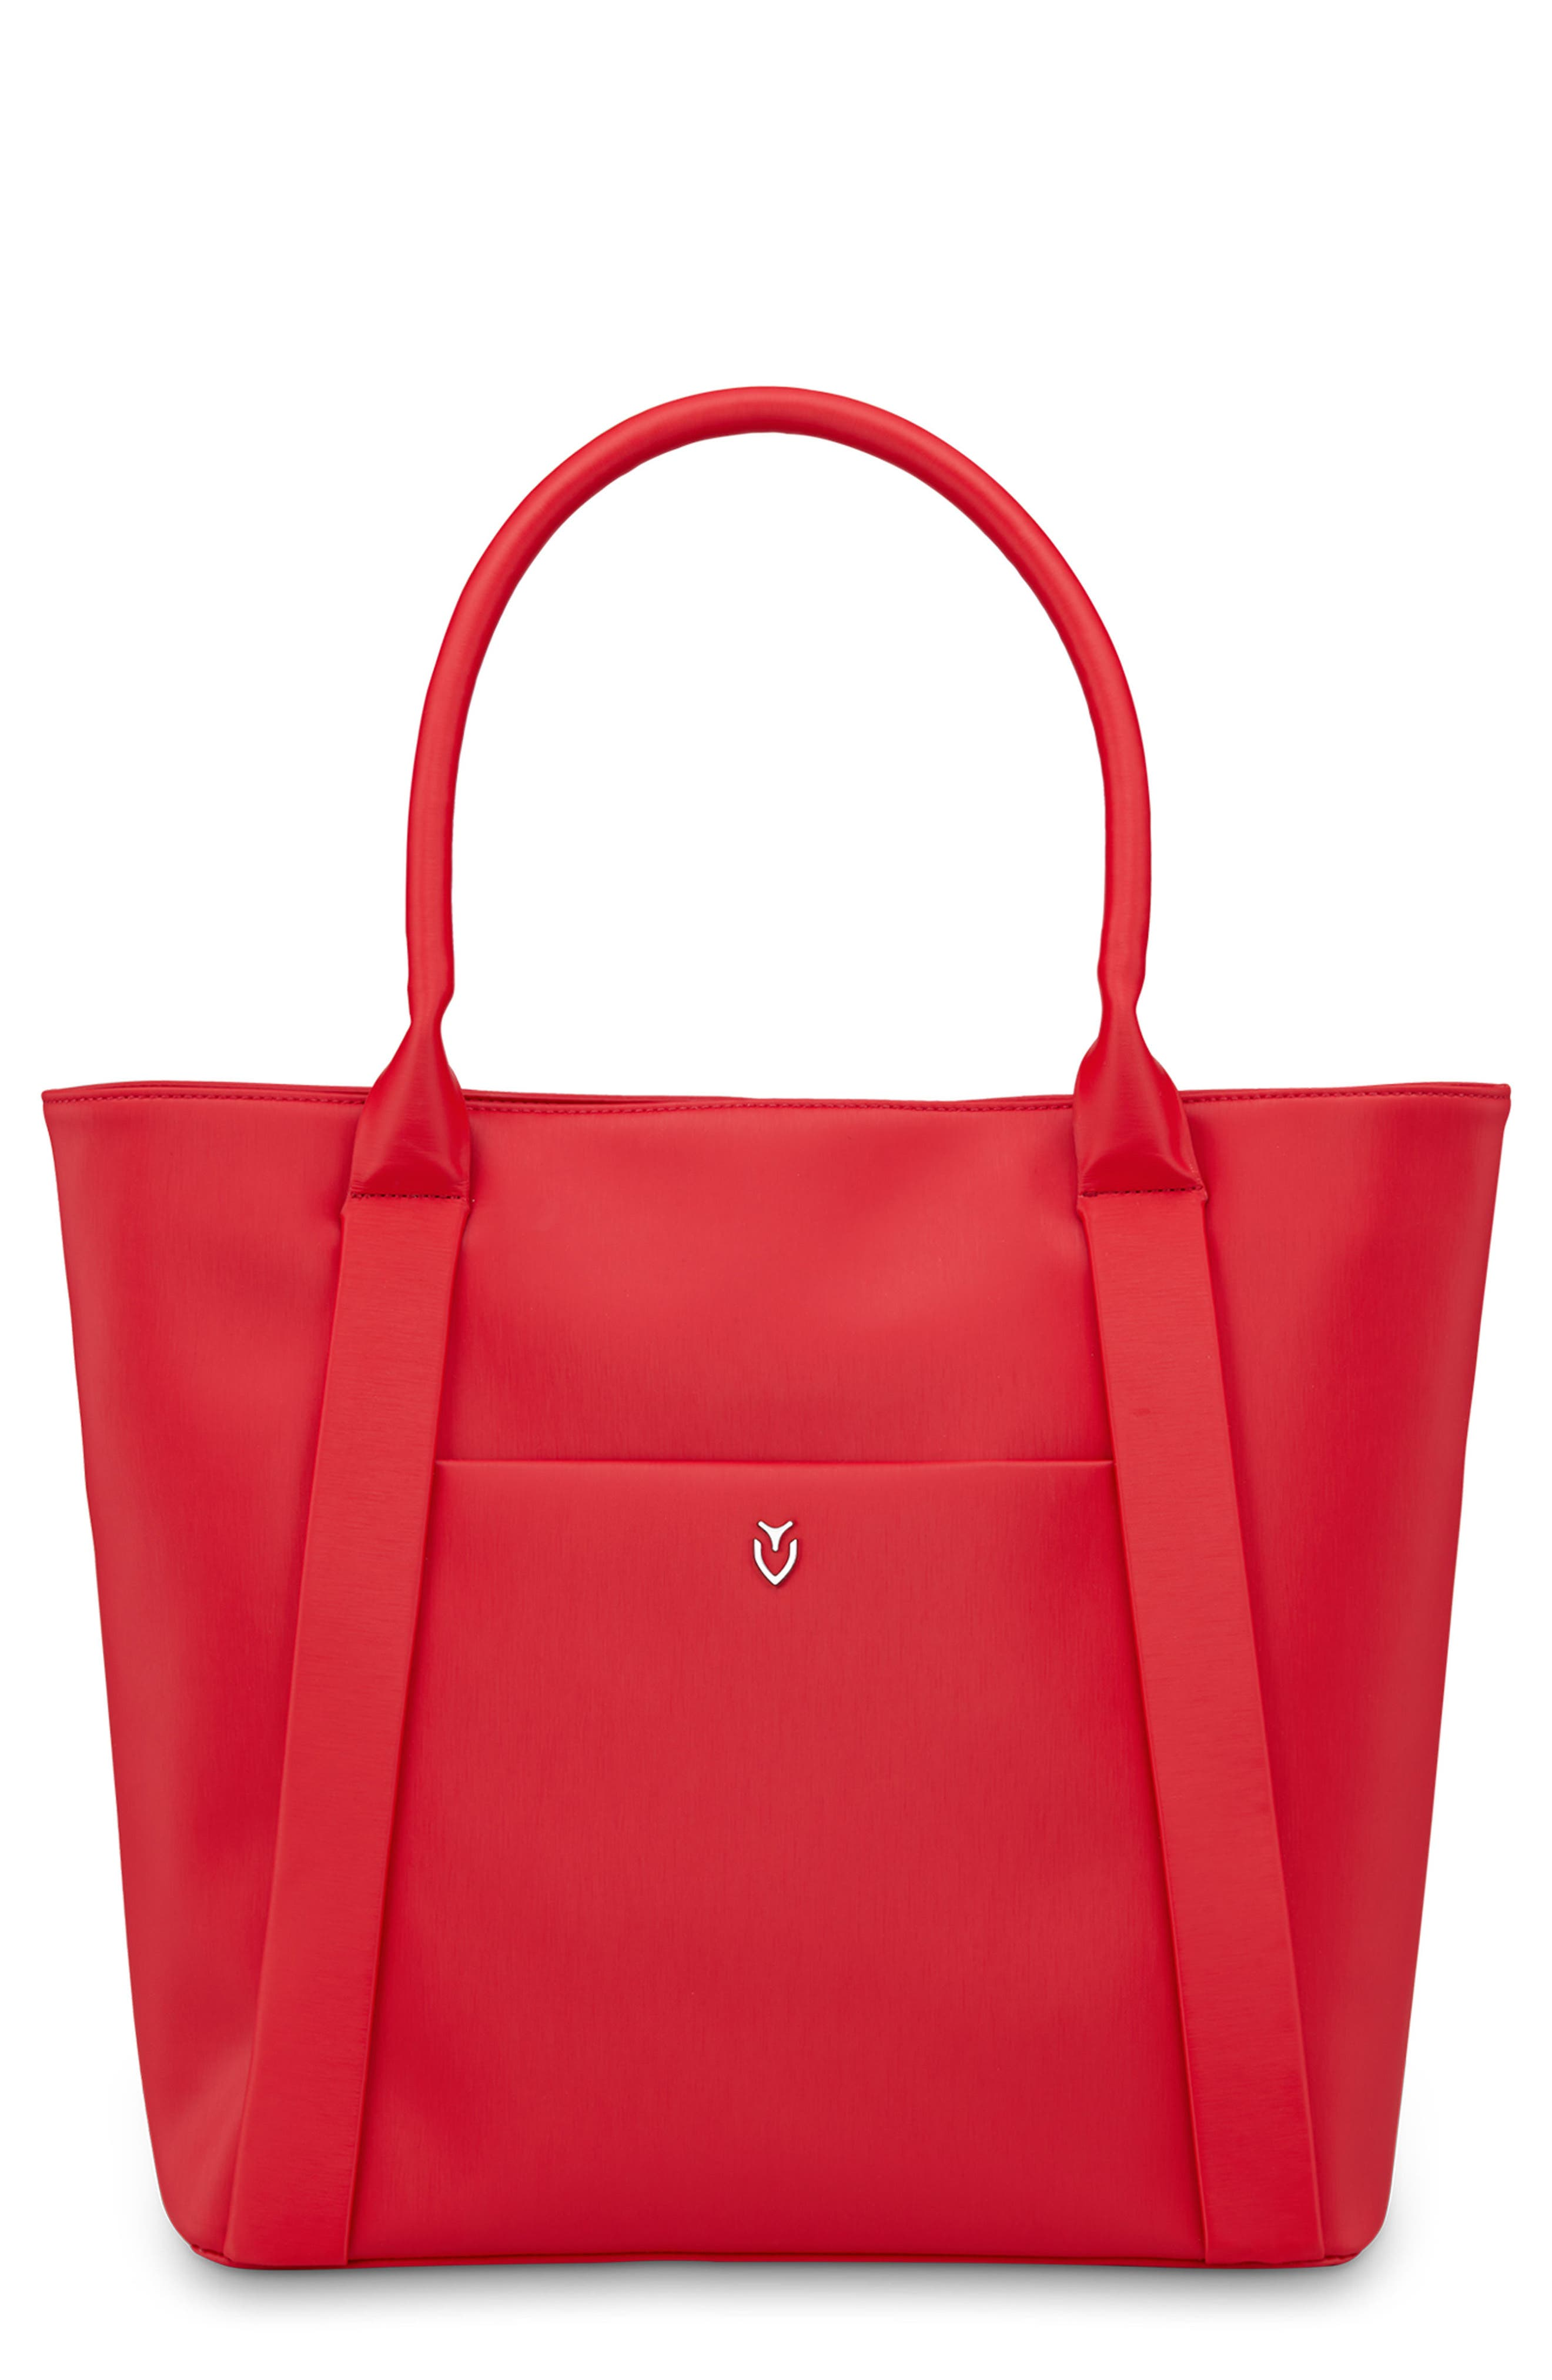 Signature 2.0 Large Faux Leather Tote Bag,                             Main thumbnail 1, color,                             PEBBLED RED